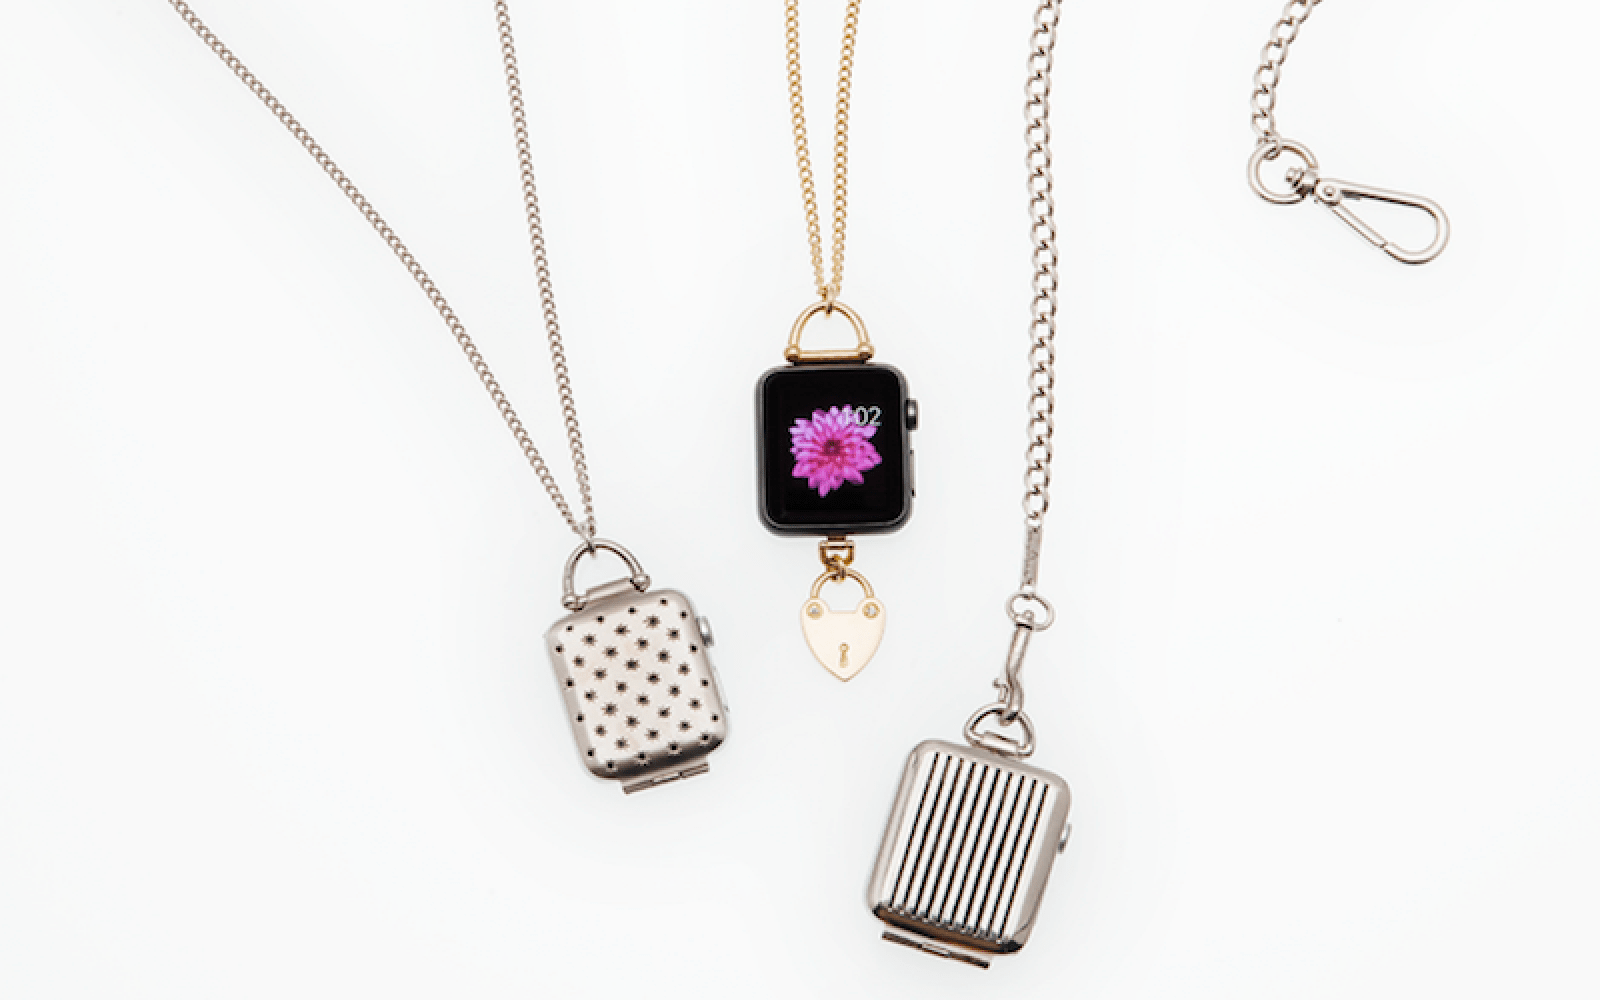 Pendulum accessory turns Apple Watch into a necklace pendant or pocket watch